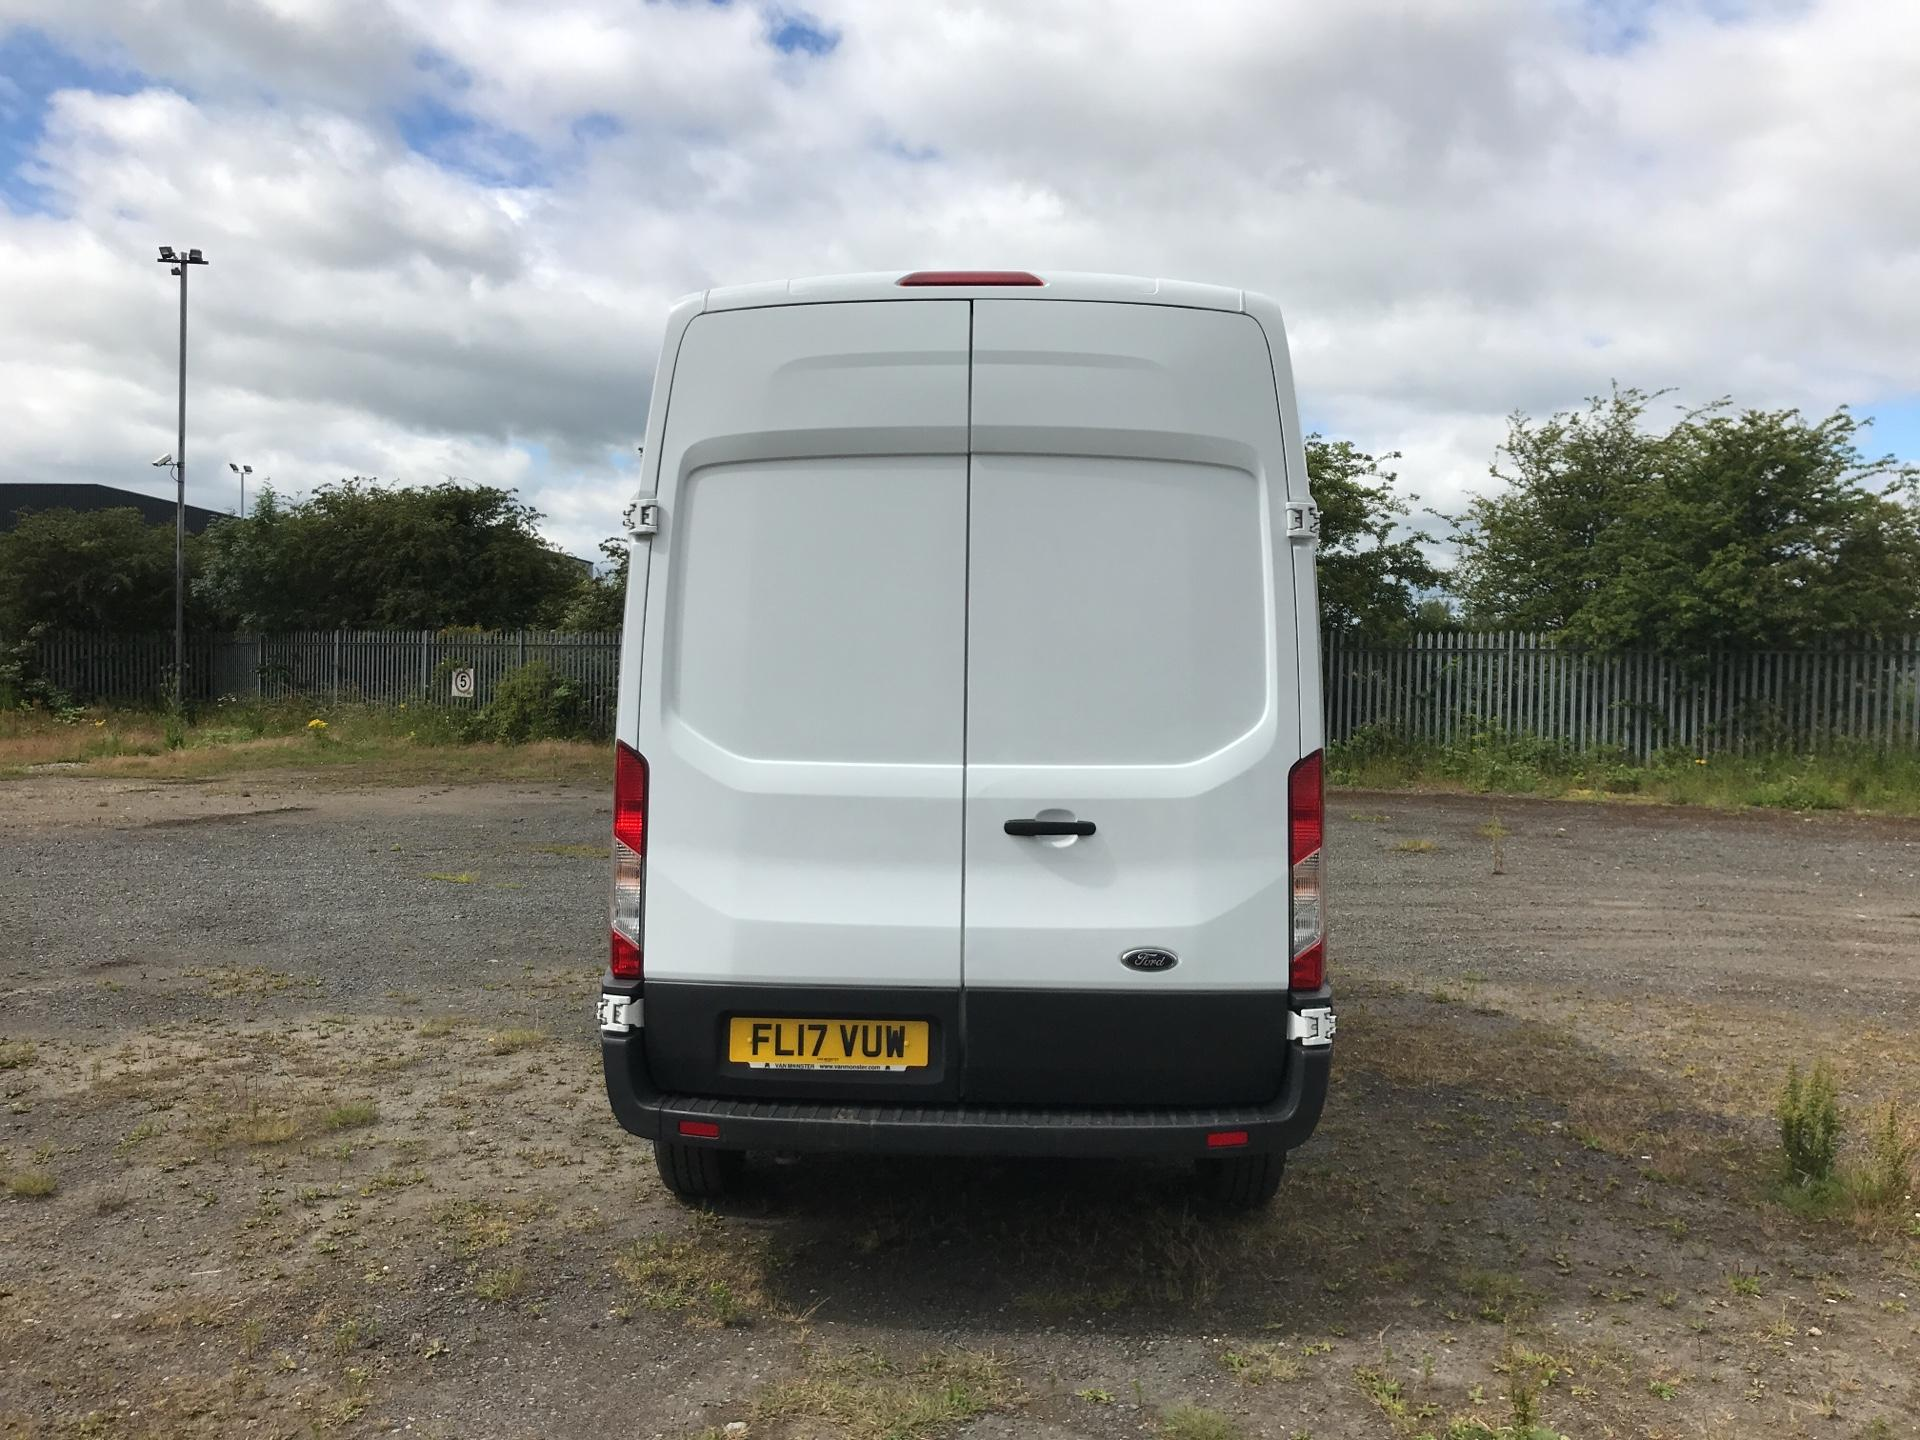 2017 Ford Transit 2.0 Tdci 130Ps H3 Van *VALUE RANGE VEHICLE CONDITION REFLECTED IN PRICE* (FL17VUW) Image 4